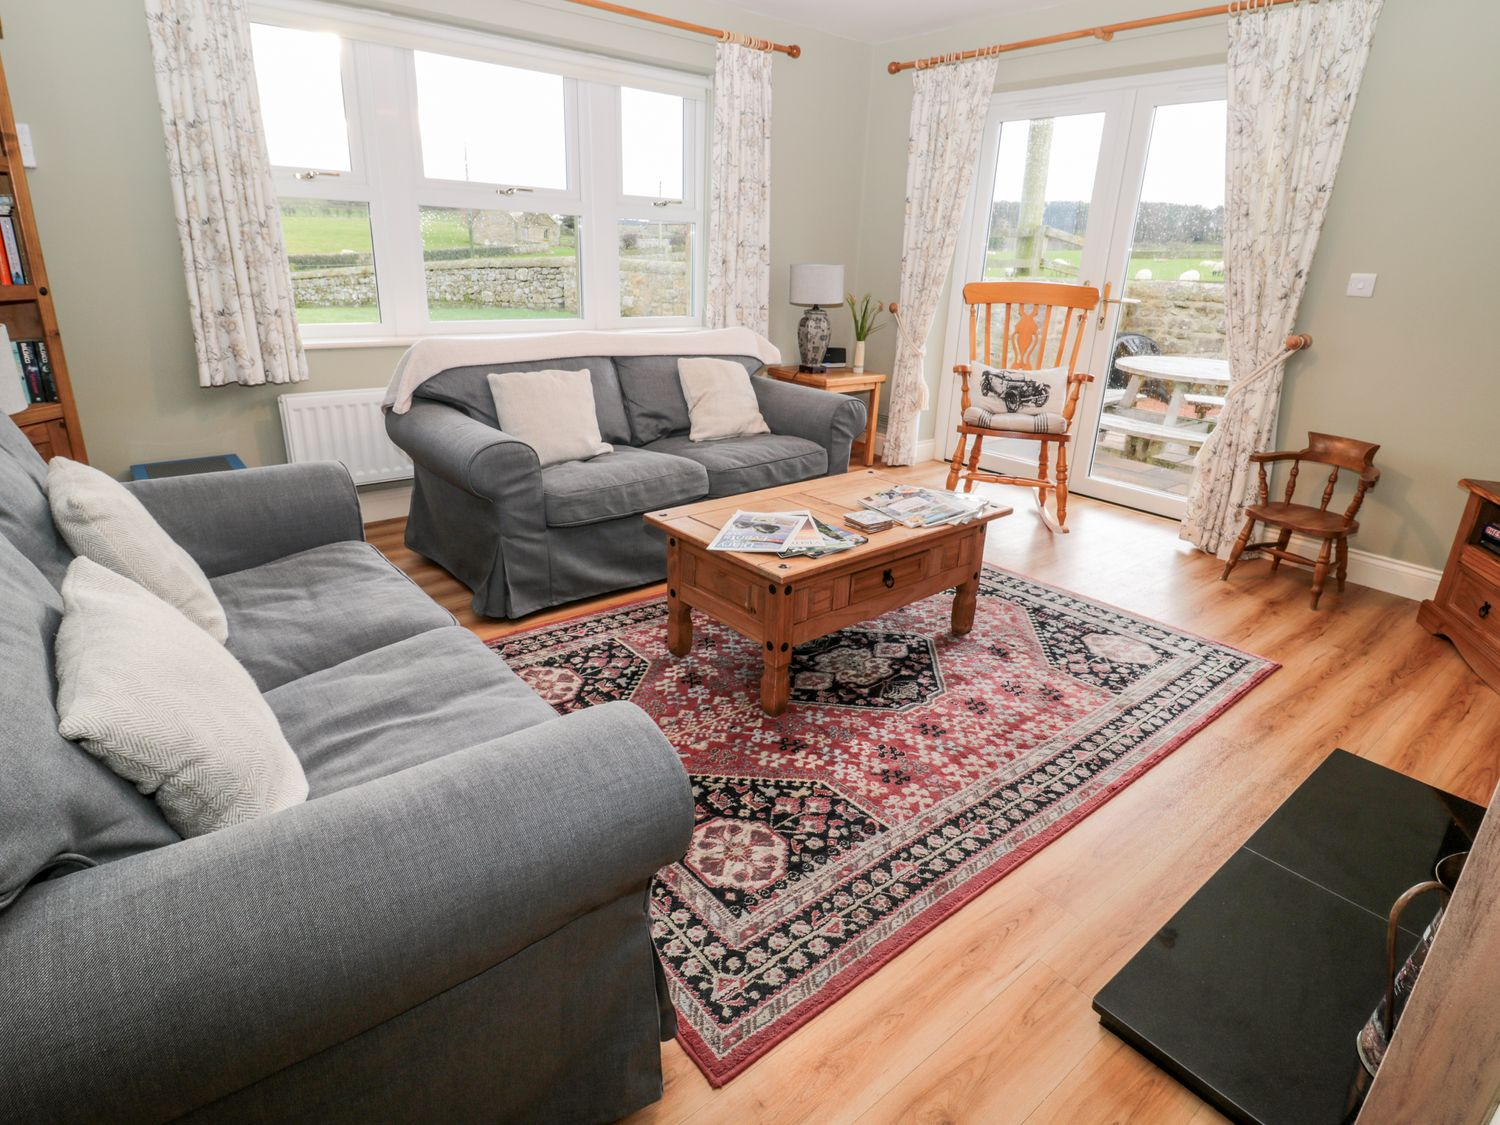 Pasture View in Chathill near Lucker - sleeps 4 people